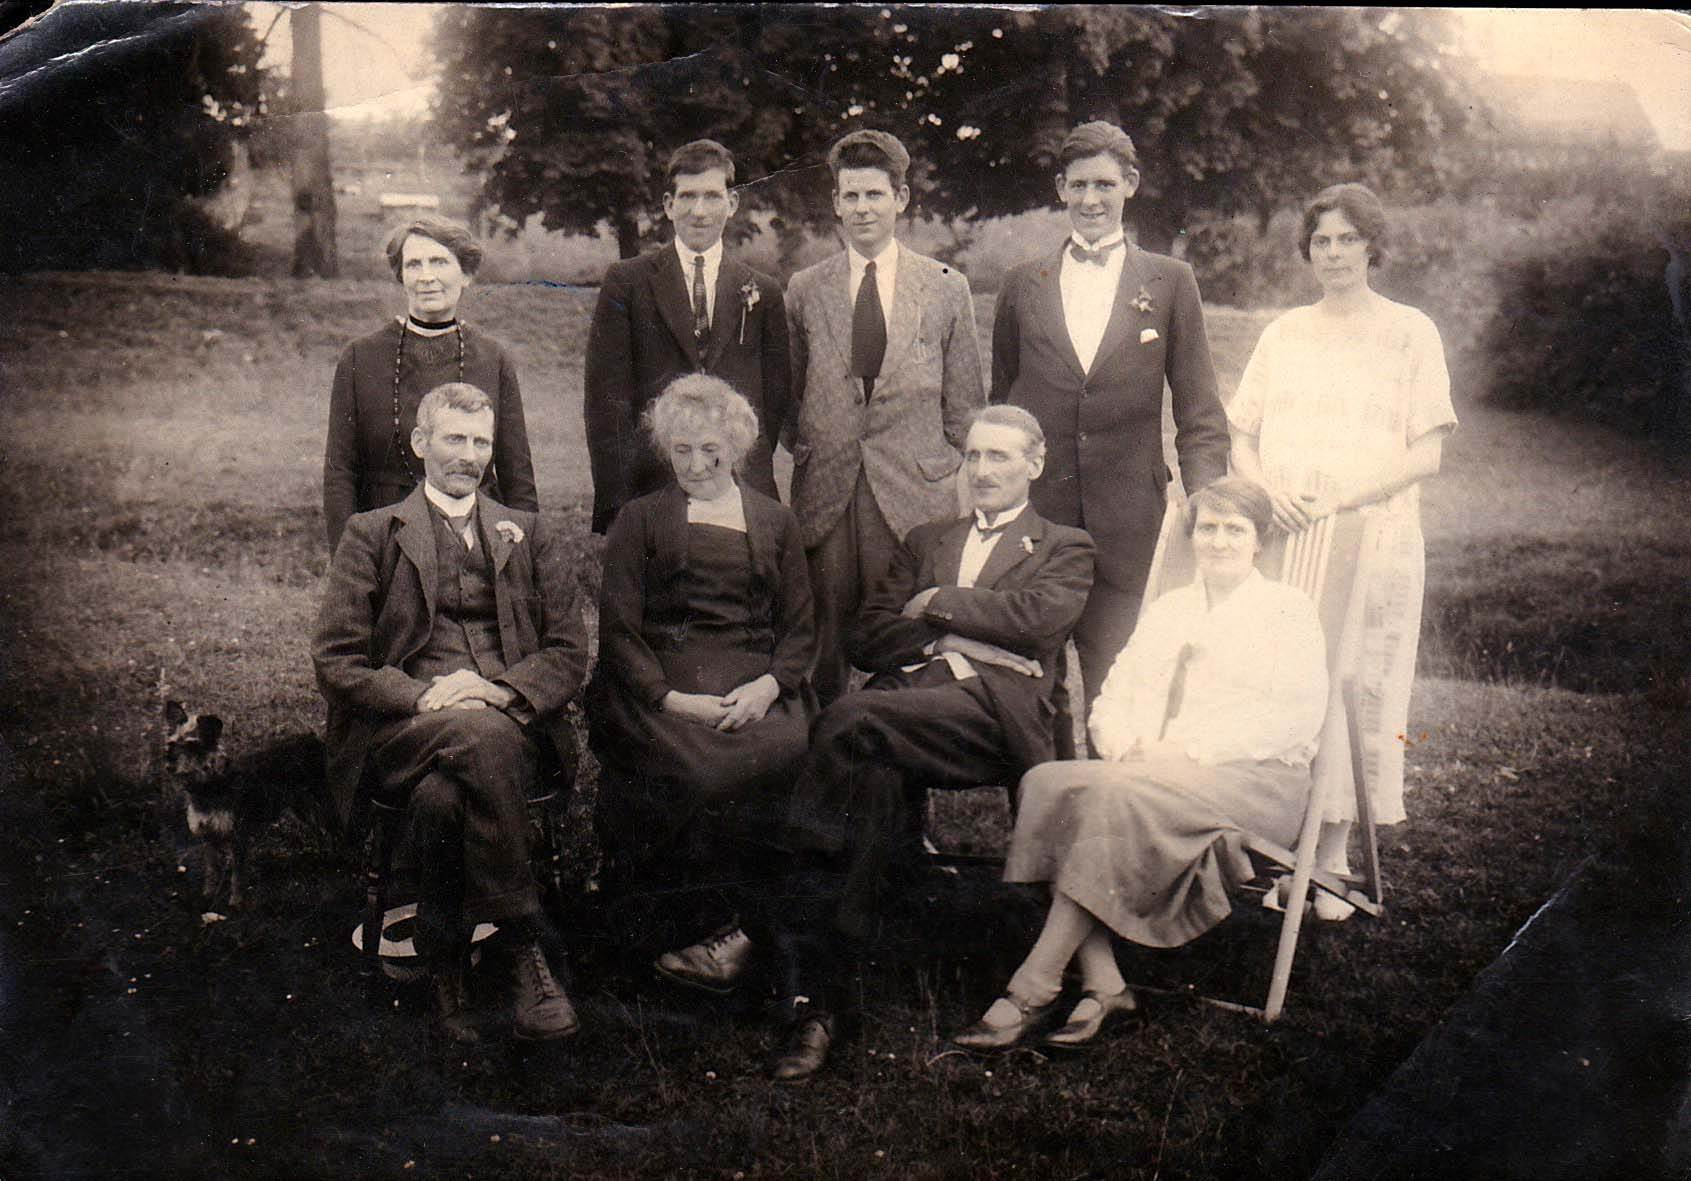 c. 1920. Florence Farley with her three brothers. Top row: Unknown, Brothers: Cyril, Ellis, Albert, Florrie. Bottom row: Father: Harry, Mother: Annie, Unknown, Unknown.